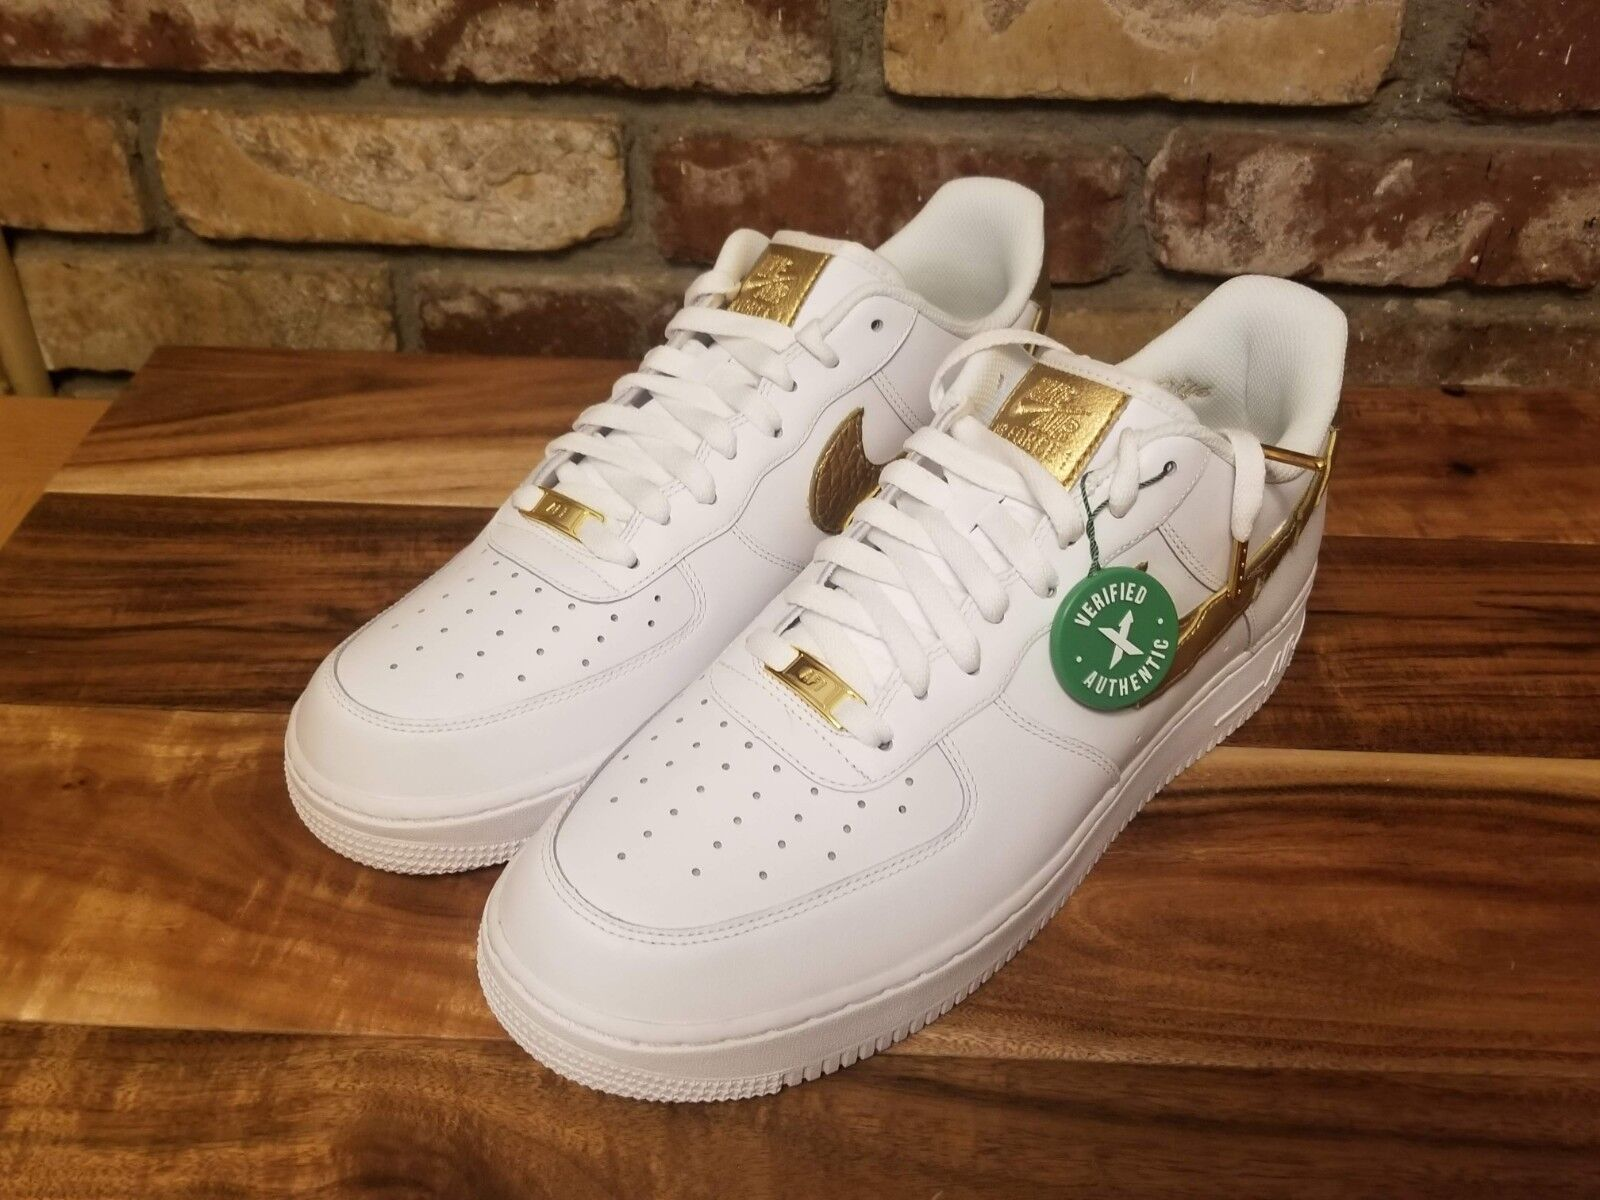 Nike Air Force 1 Low CR7 Golden Patchwork DS Men's Size 11.5